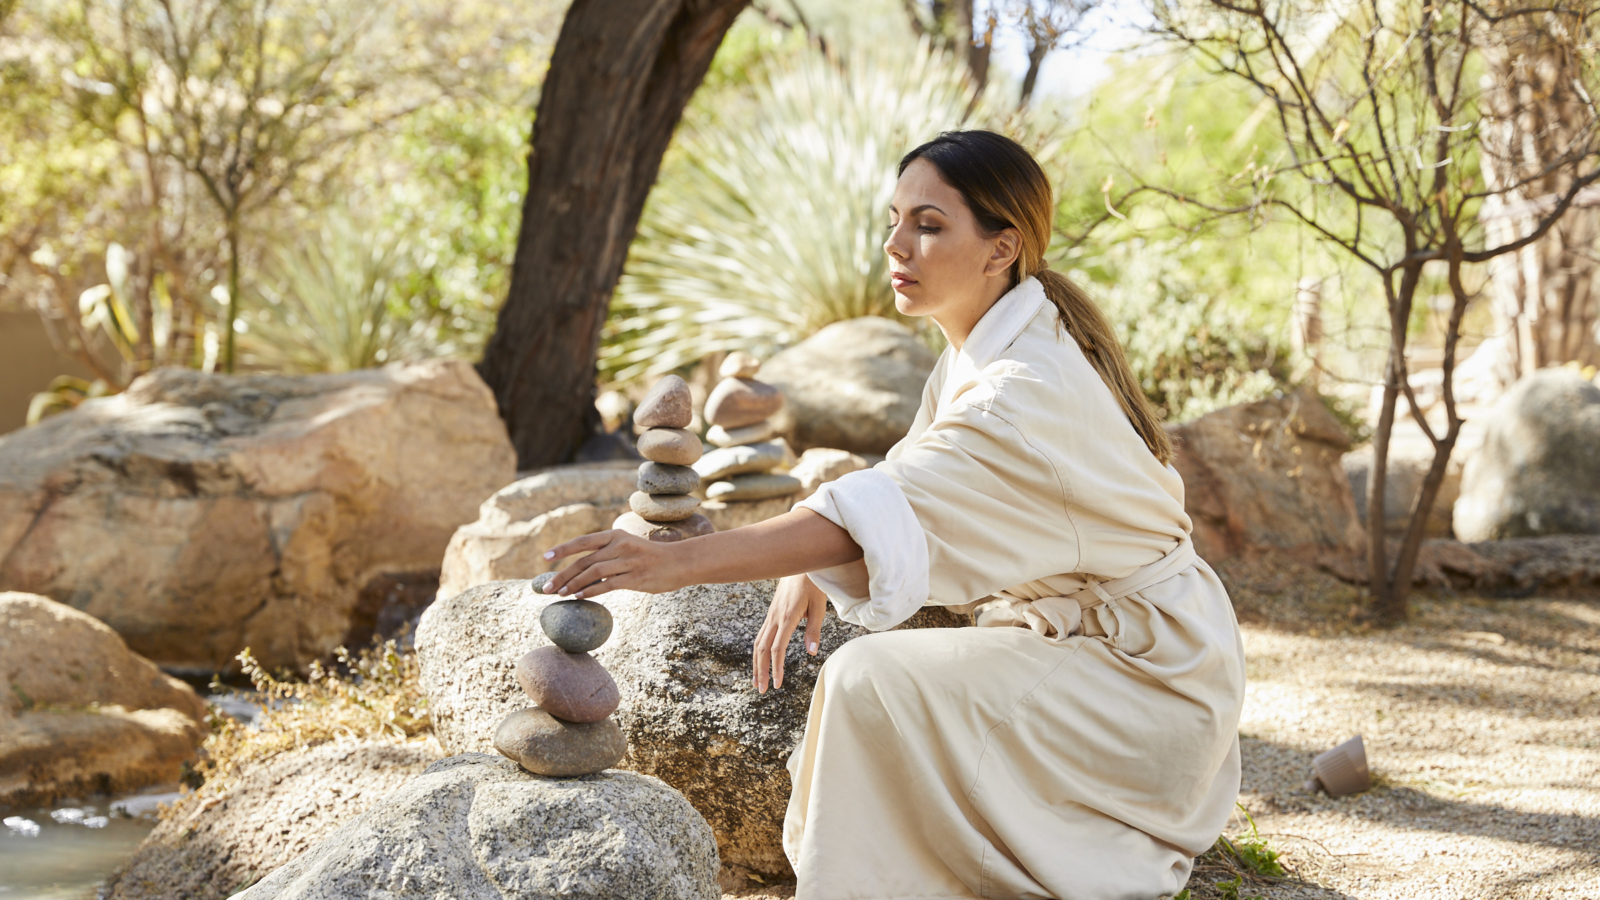 woman building stone cairn in tucson arizona